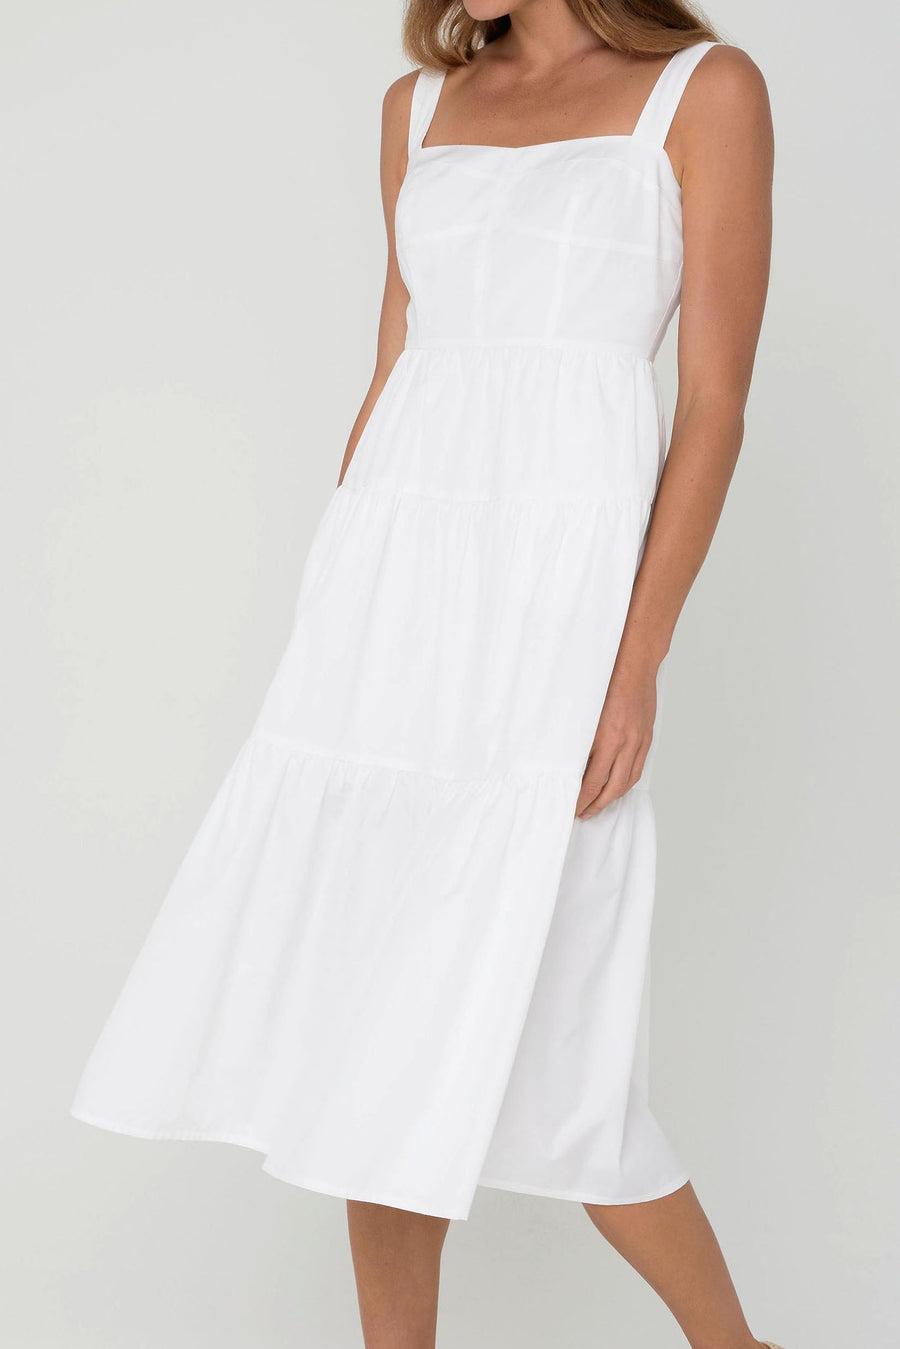 Kimberley Anne COASTLINES Organic Cotton Dress (Midi)